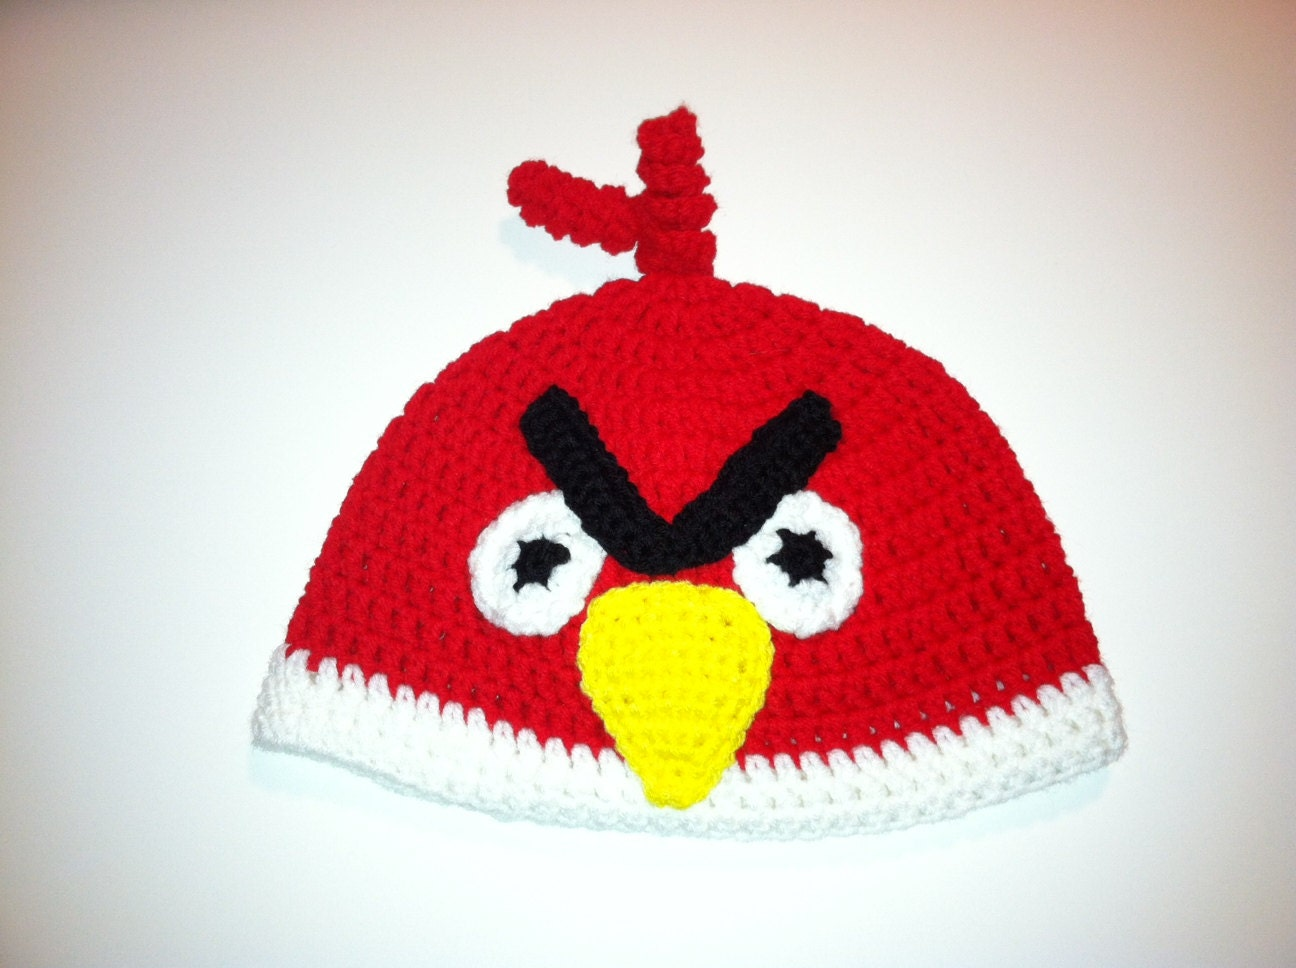 Crochet Hat Pattern Angry Bird : Crochet Red Angry Bird Hat Pattern-All sizes by Yoopercrafts